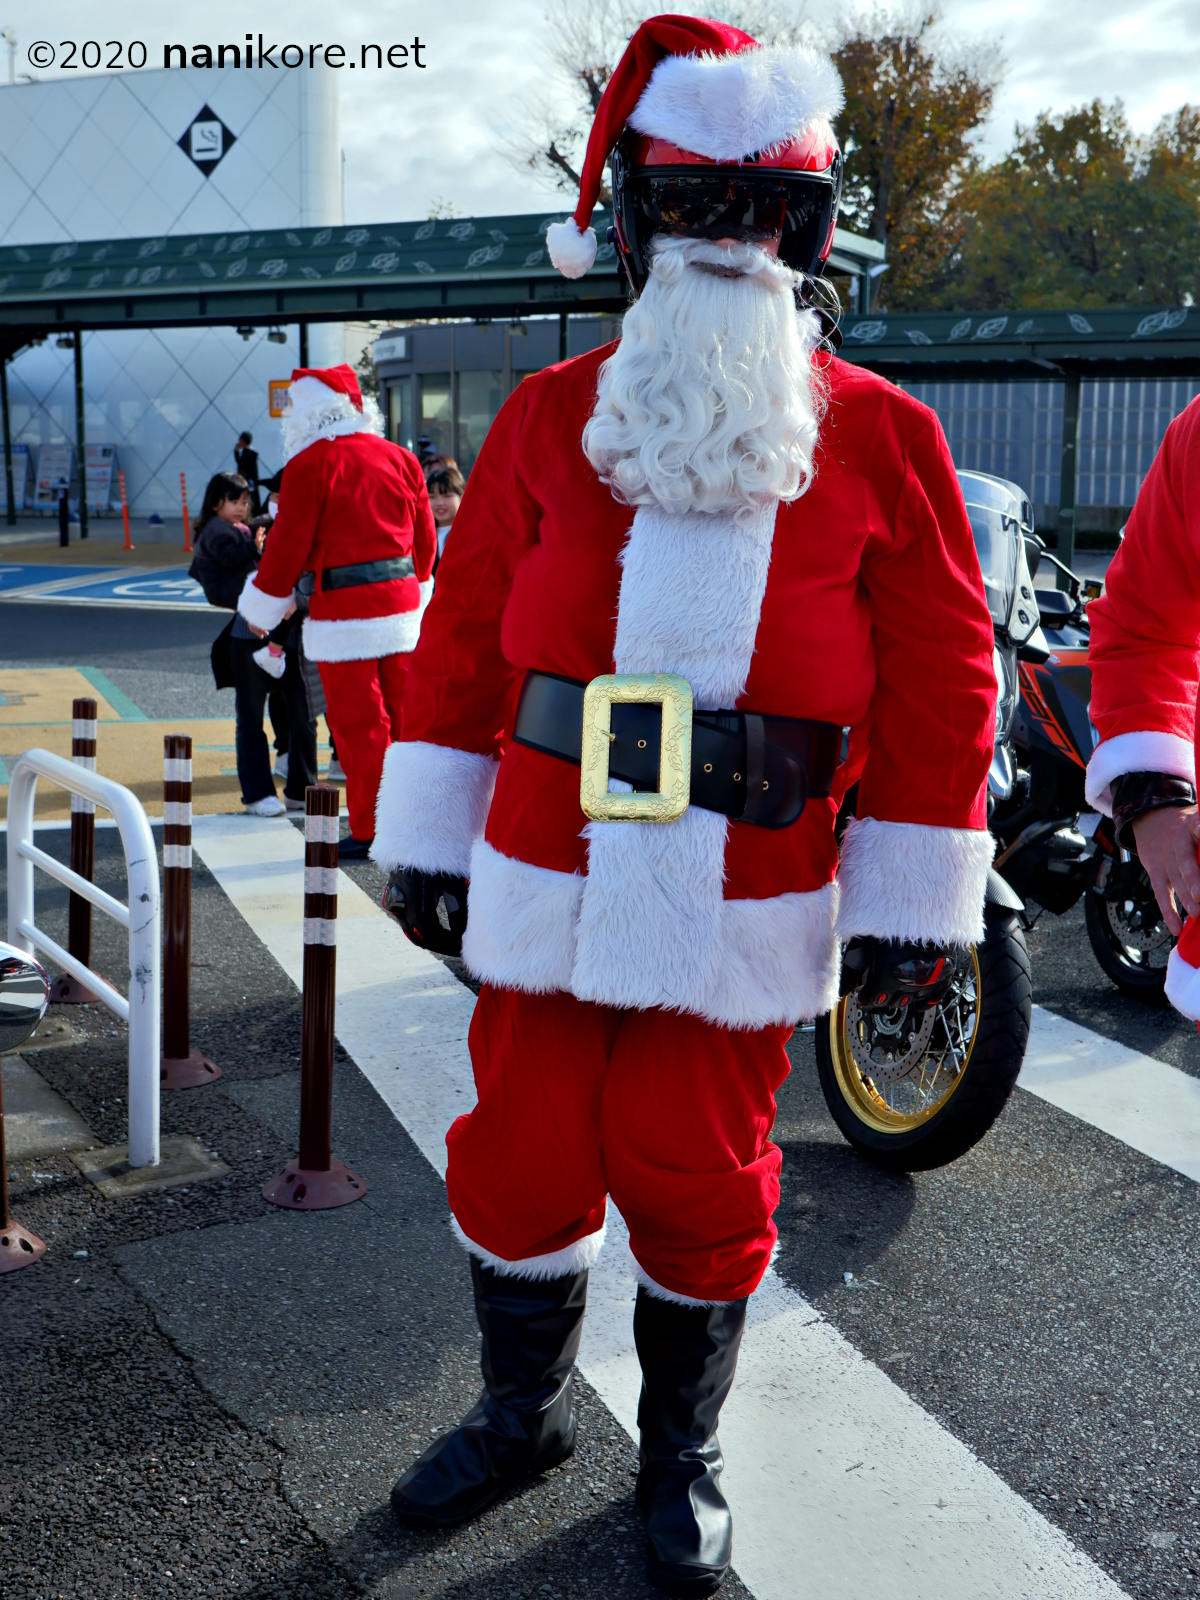 Of course Santa is a biker!